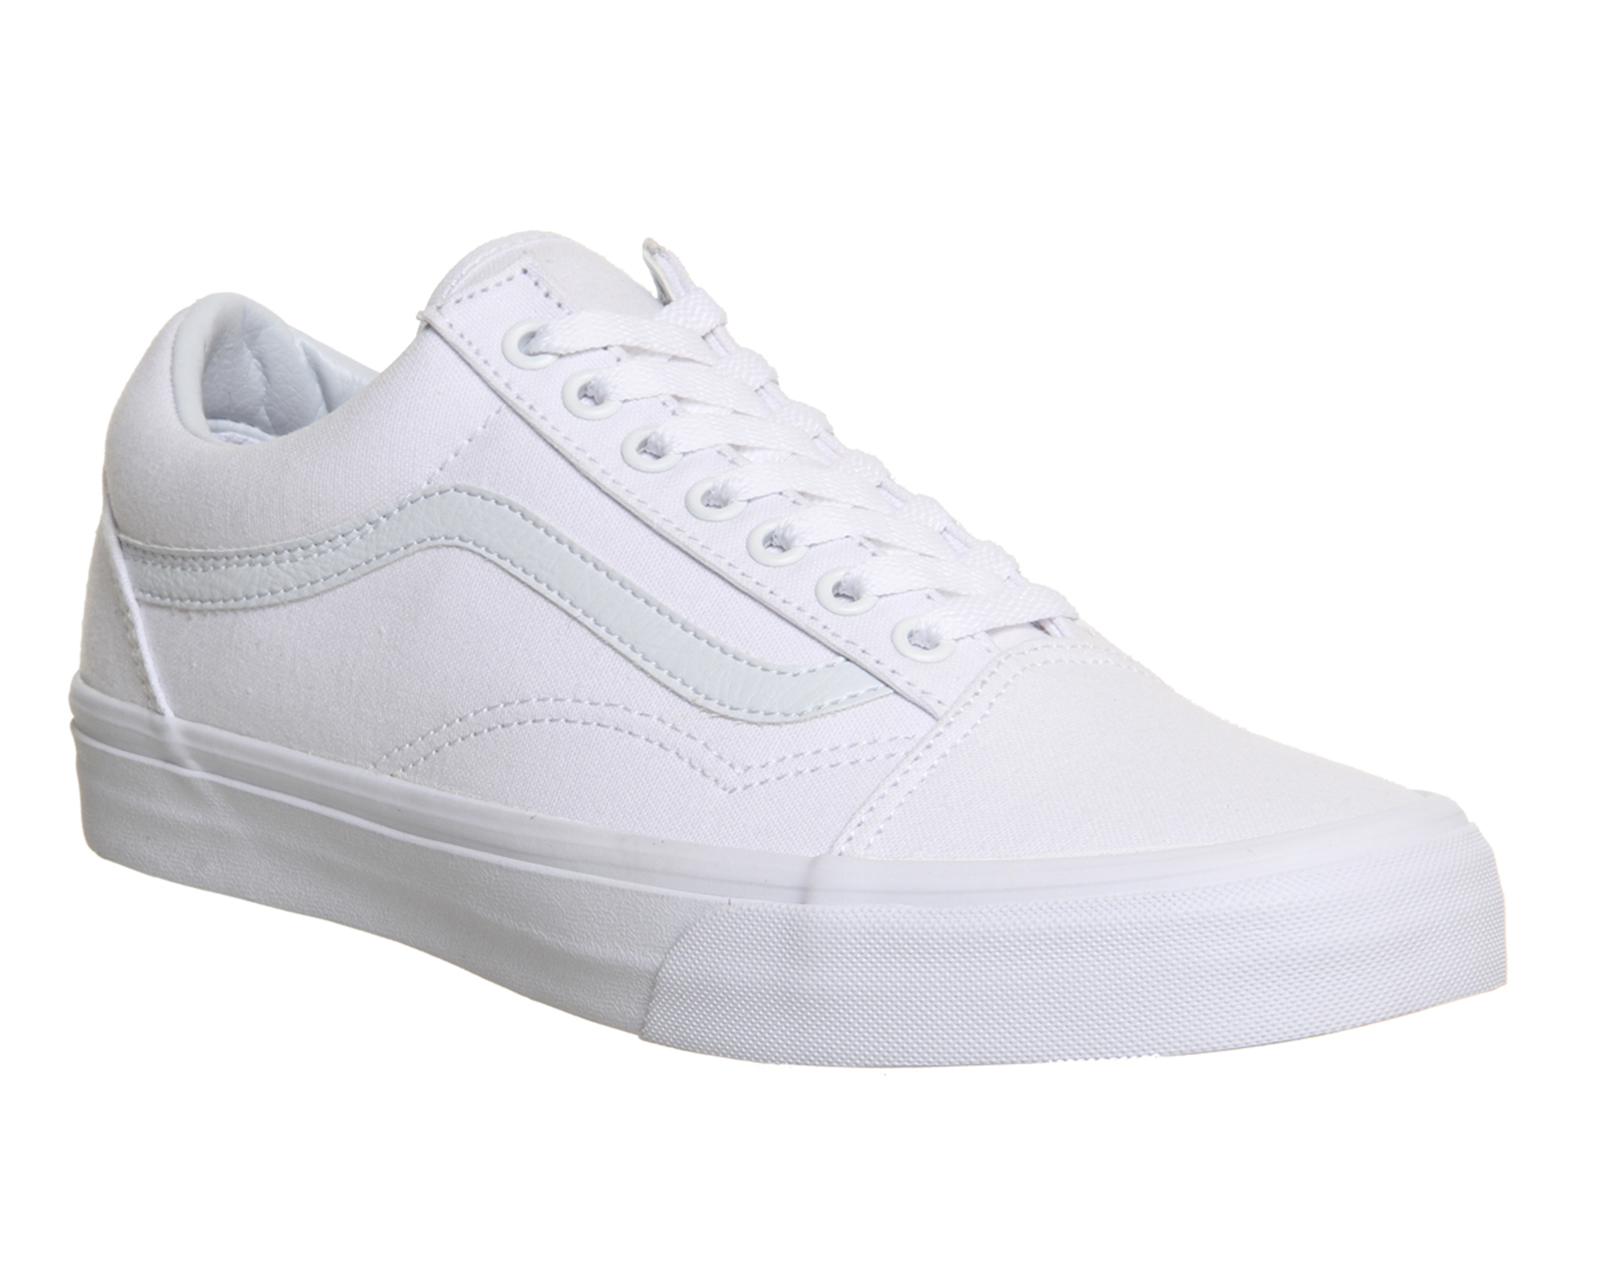 839353e9c39 Sentinel Mens Vans Old Skool Canvas Trainers WHITE MONO Trainers Shoes